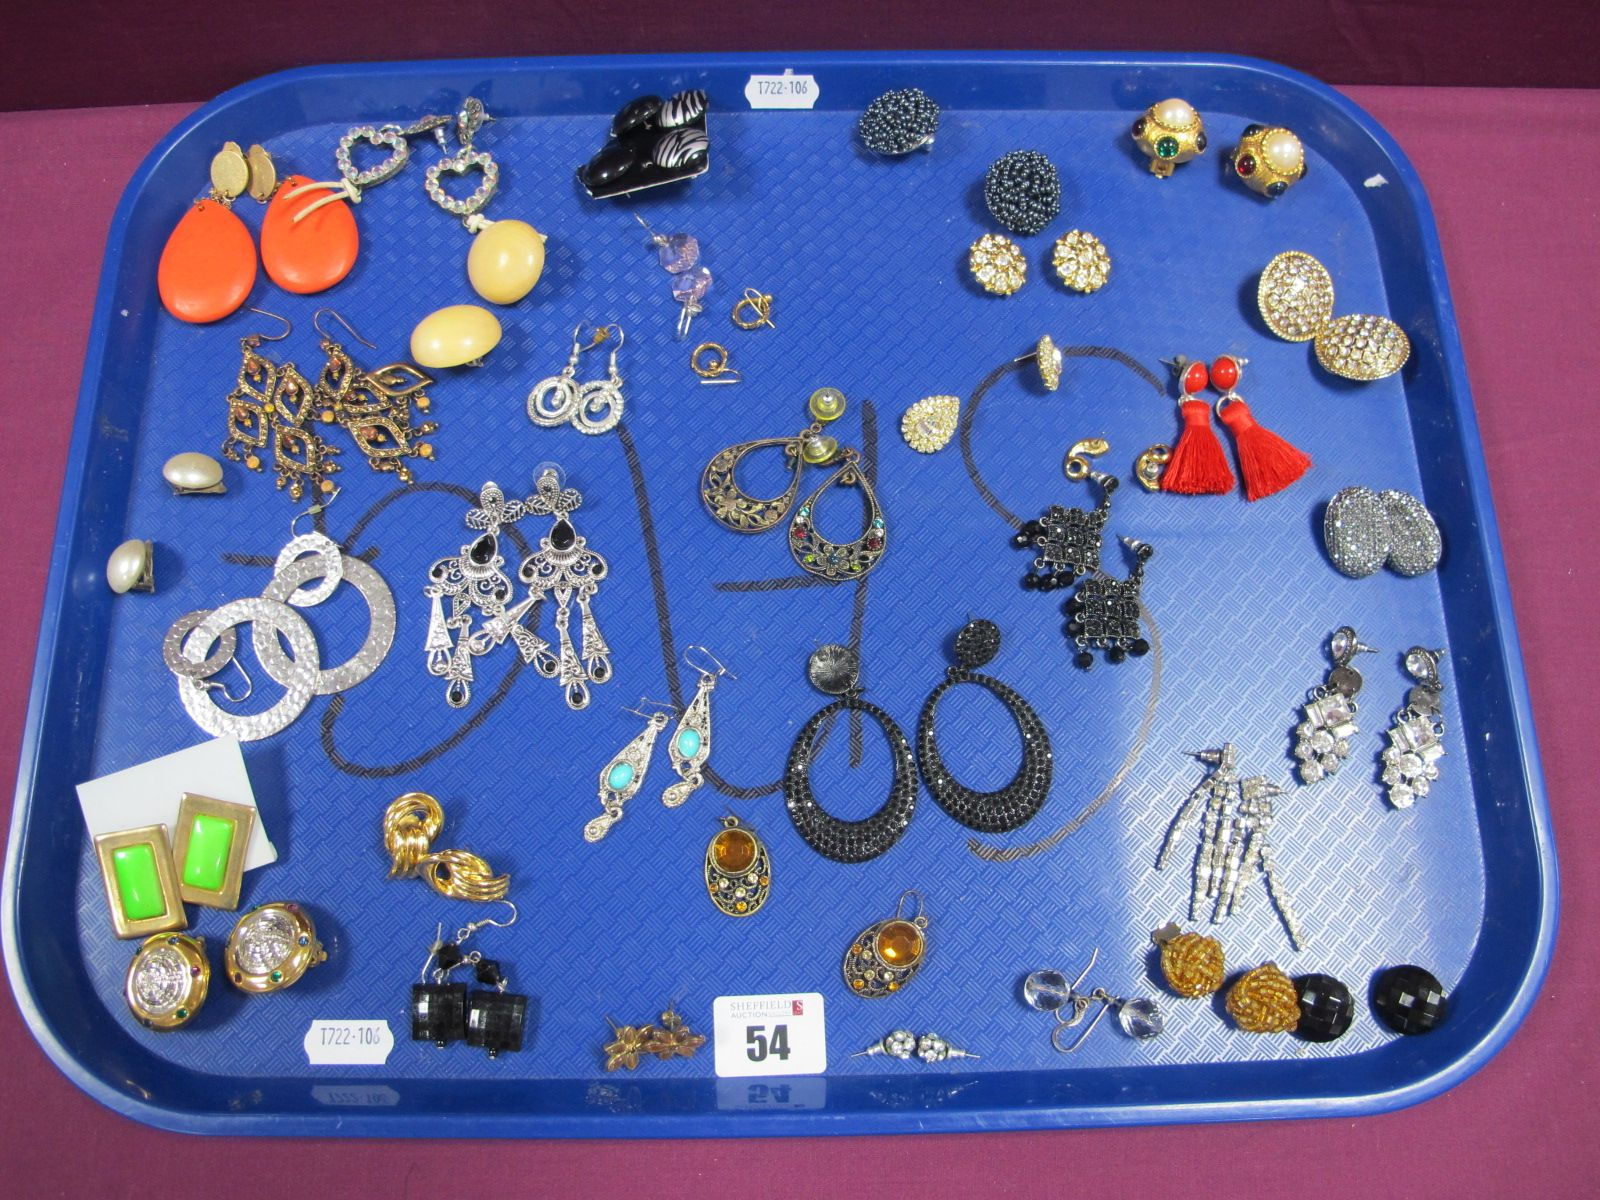 A Selection of Ornate Earrings, including diamanté, knot style, openwork drops, etc :- One Tray